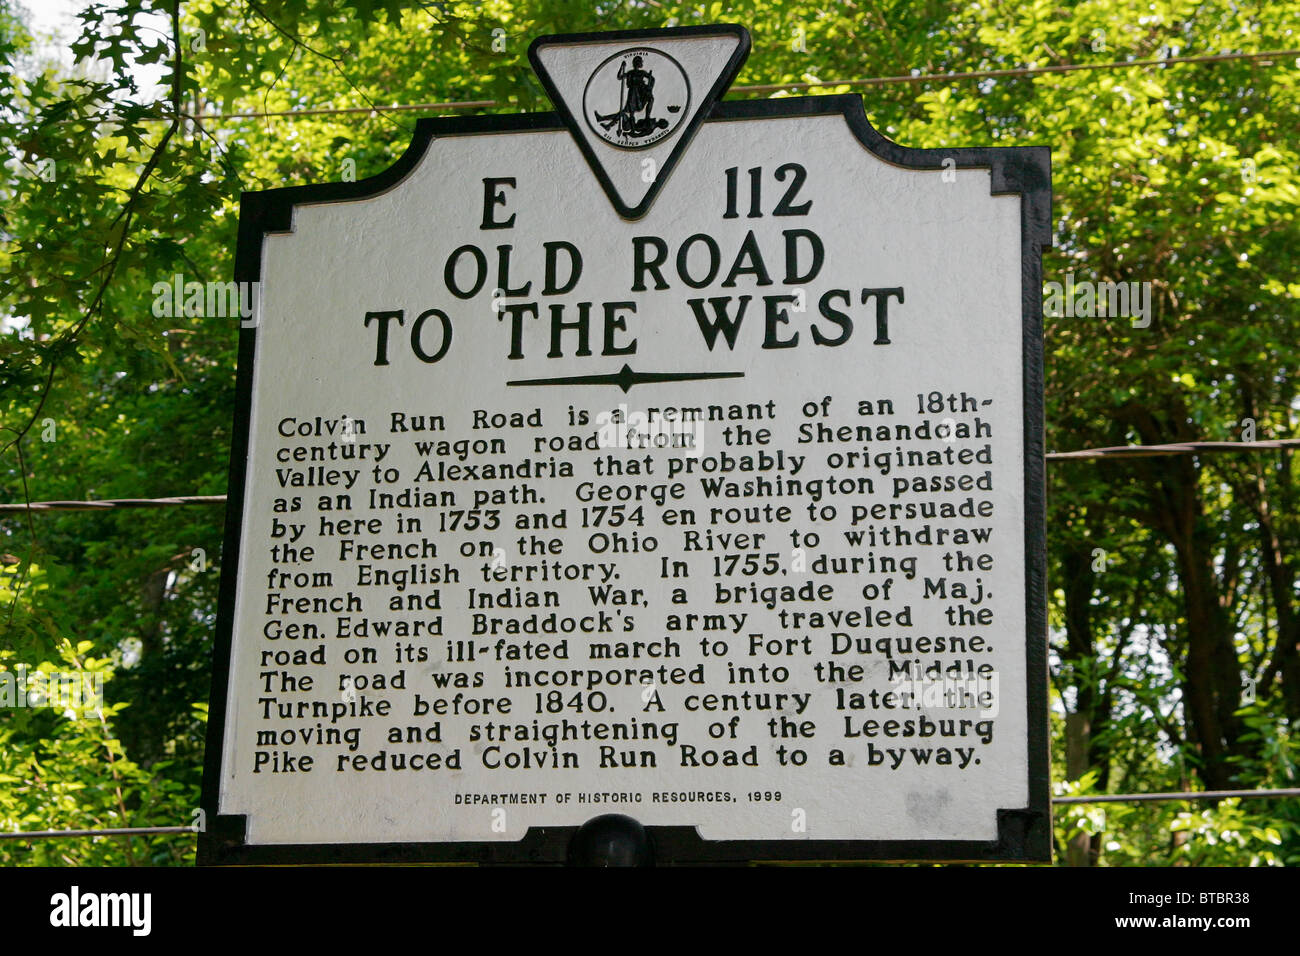 An historical marker sign with information on Colvin Run Road. - Stock Image